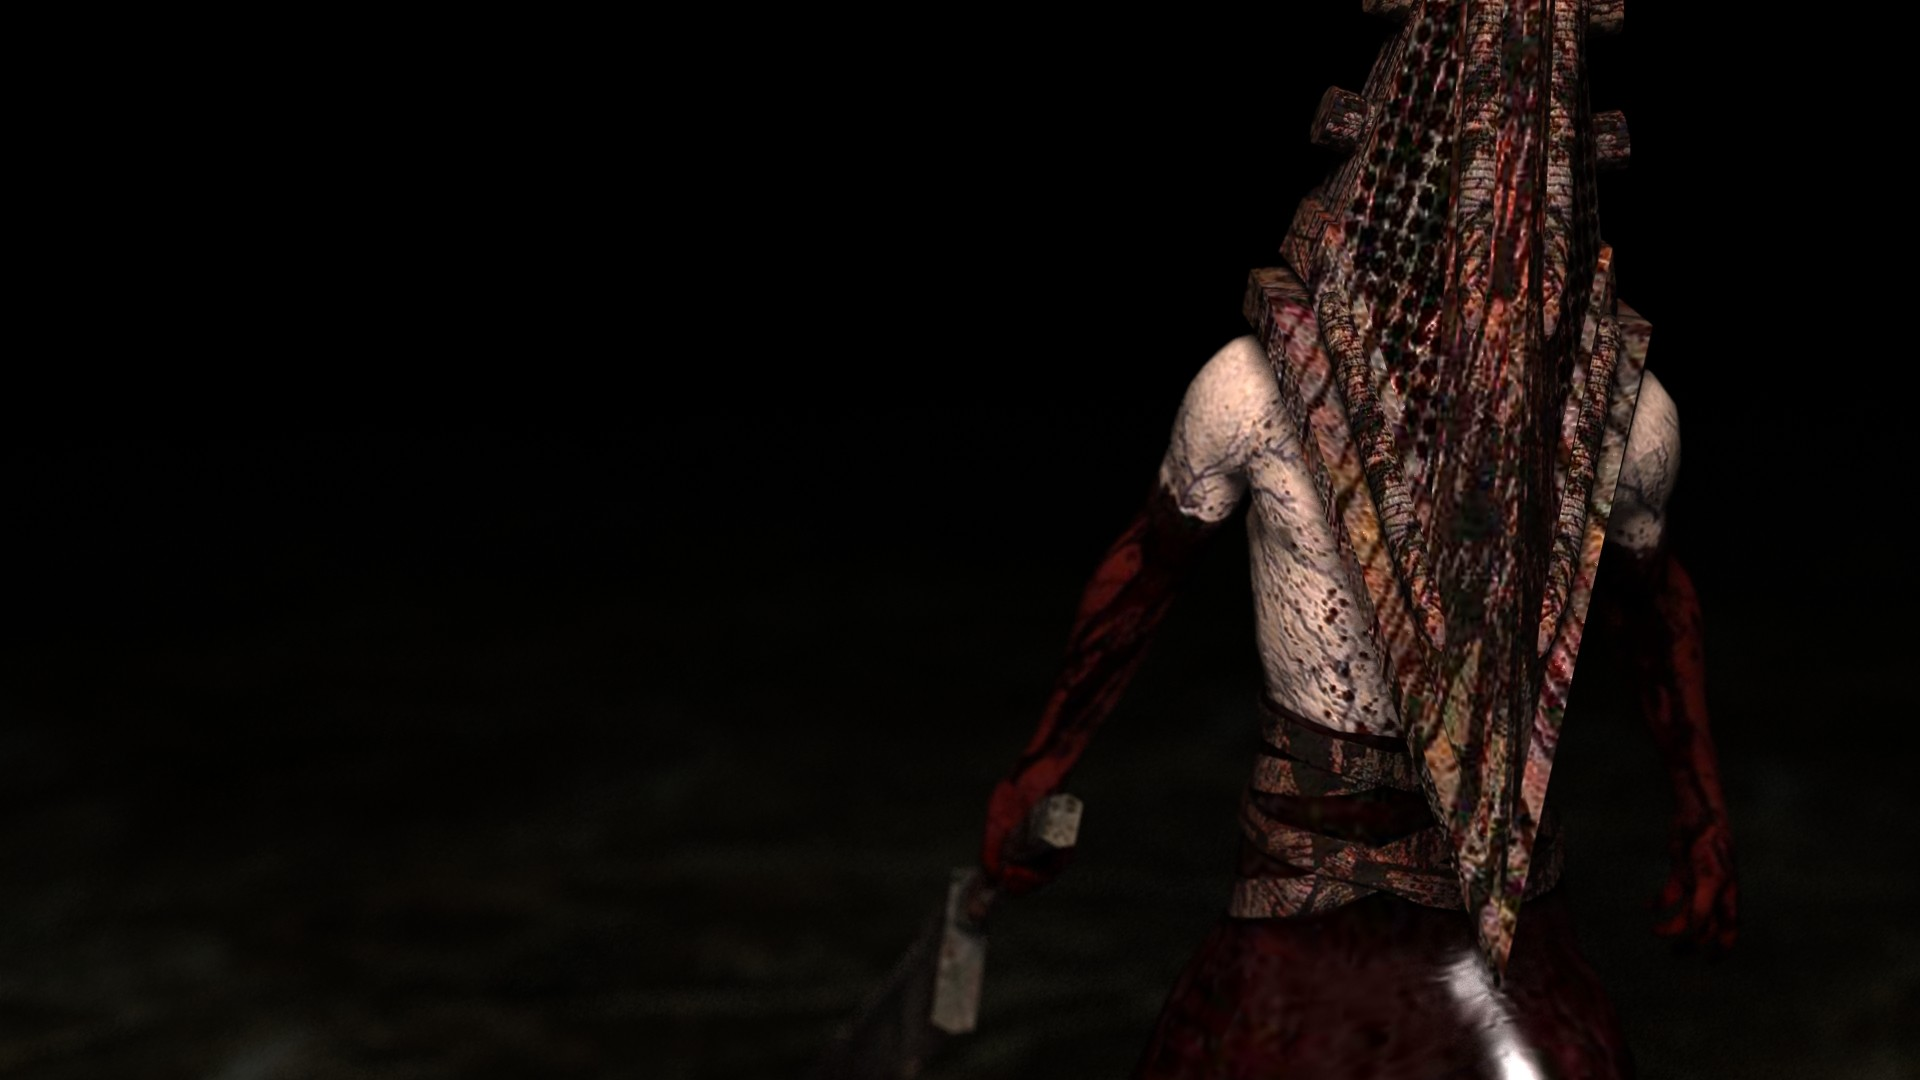 Silent Hill Pyramid Head Wallpaper 72 Images